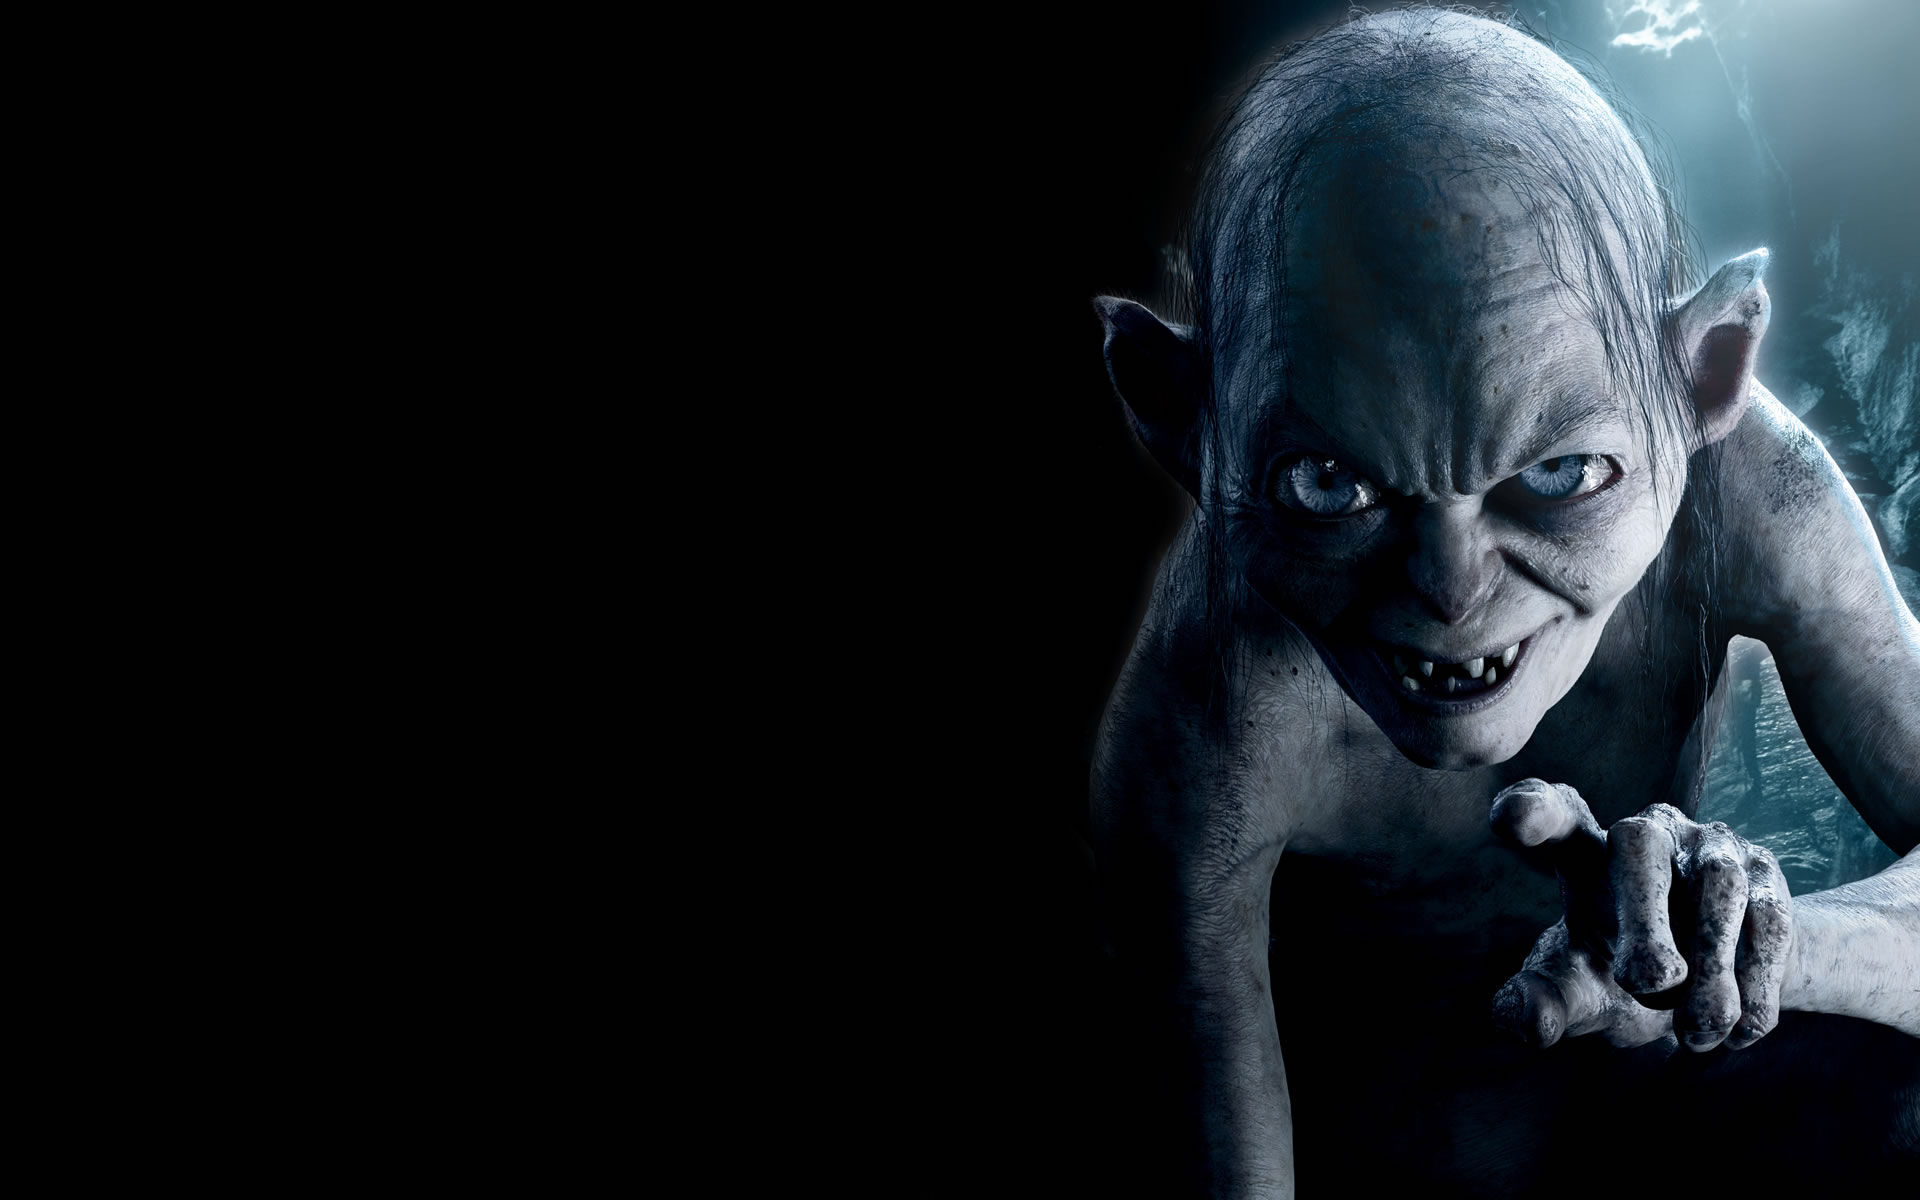 Gollum Wallpaper.